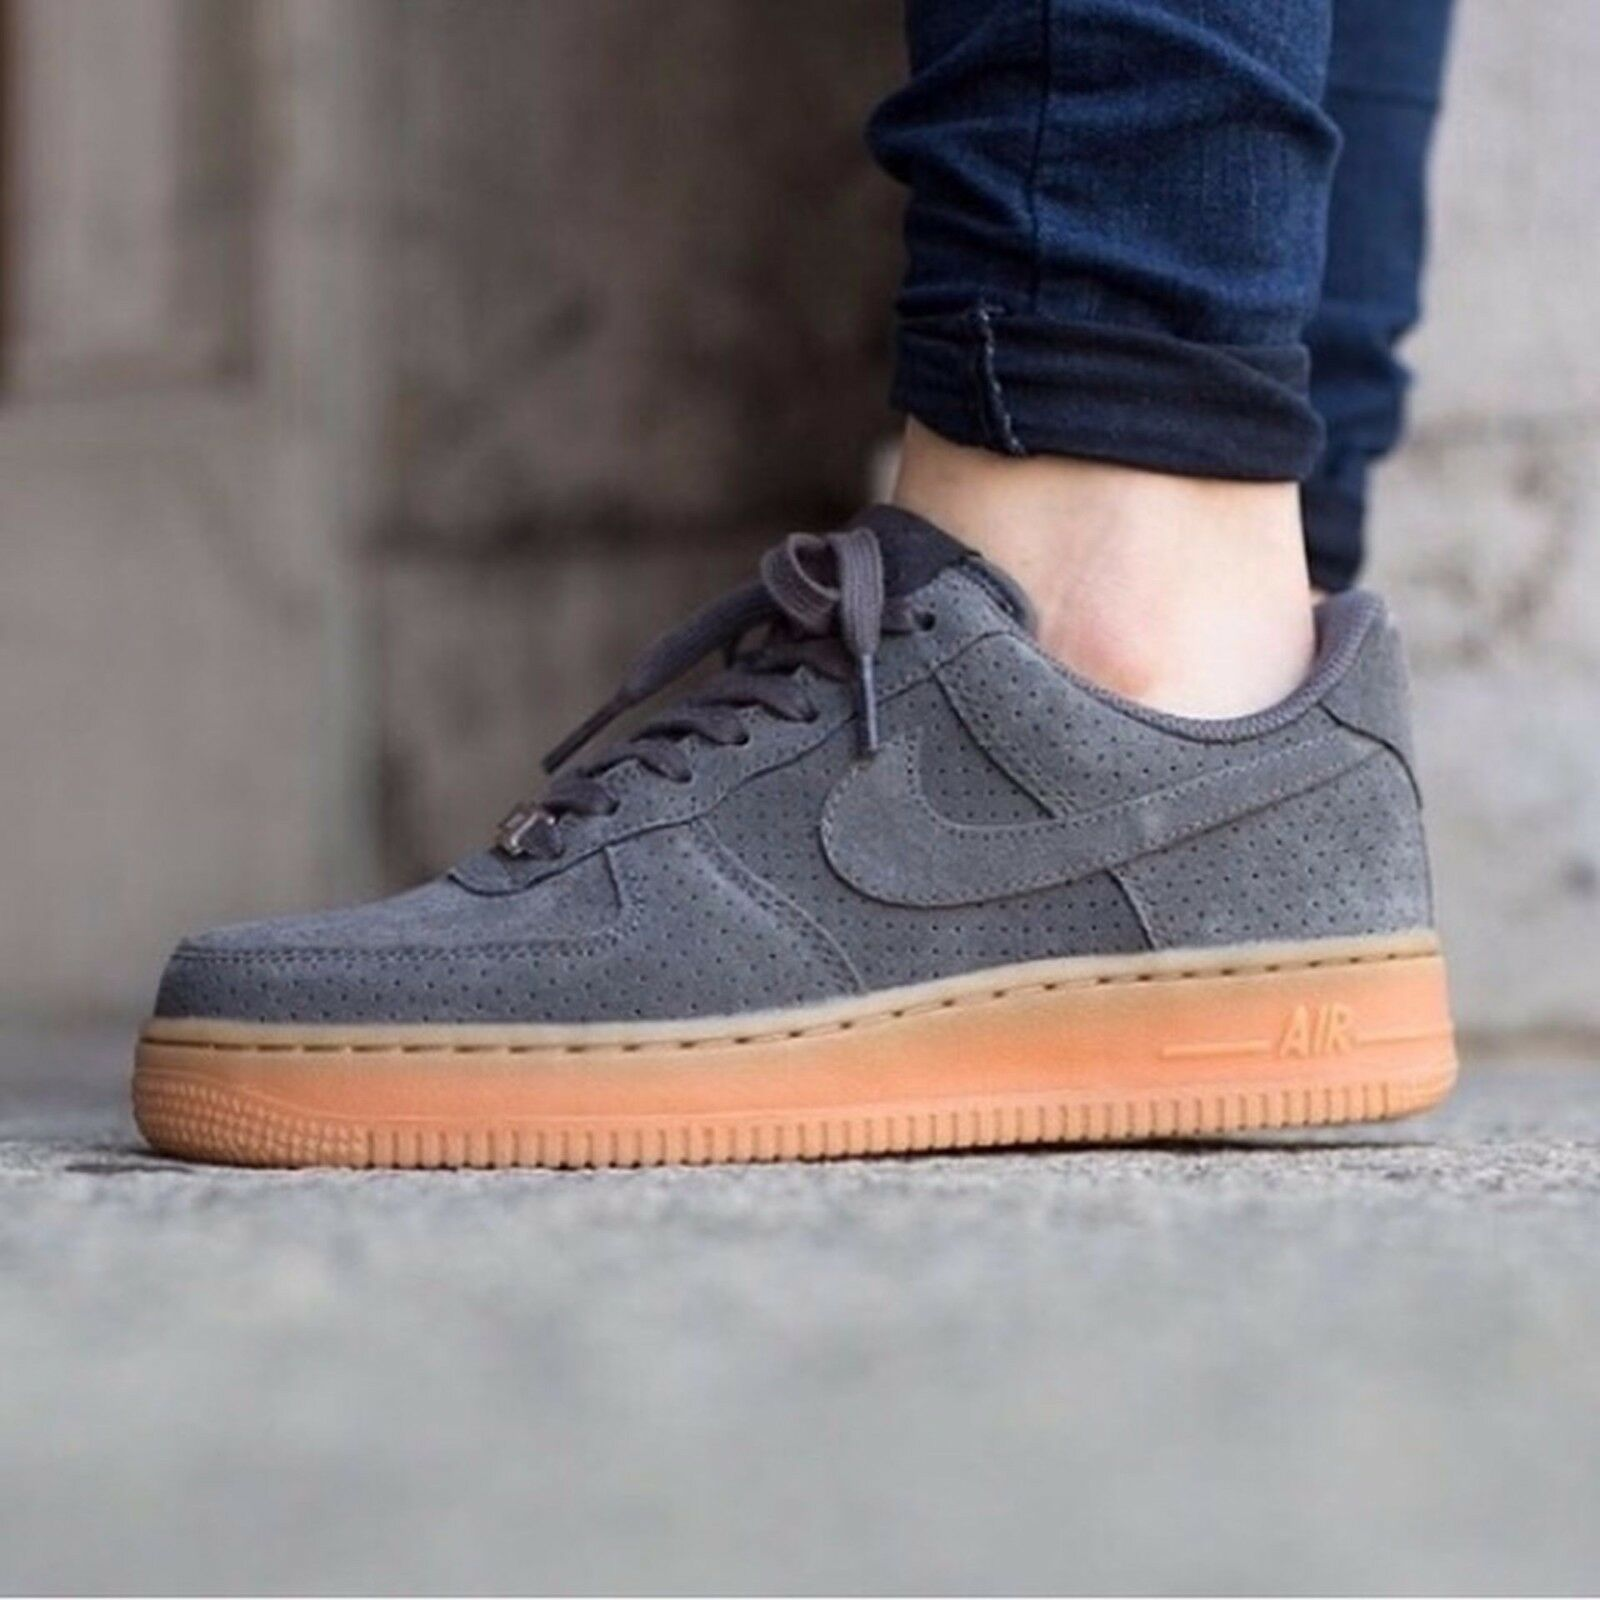 Nike air force 1 07 pelle grigio scuro / gomma 749263-001 wmn sz 10